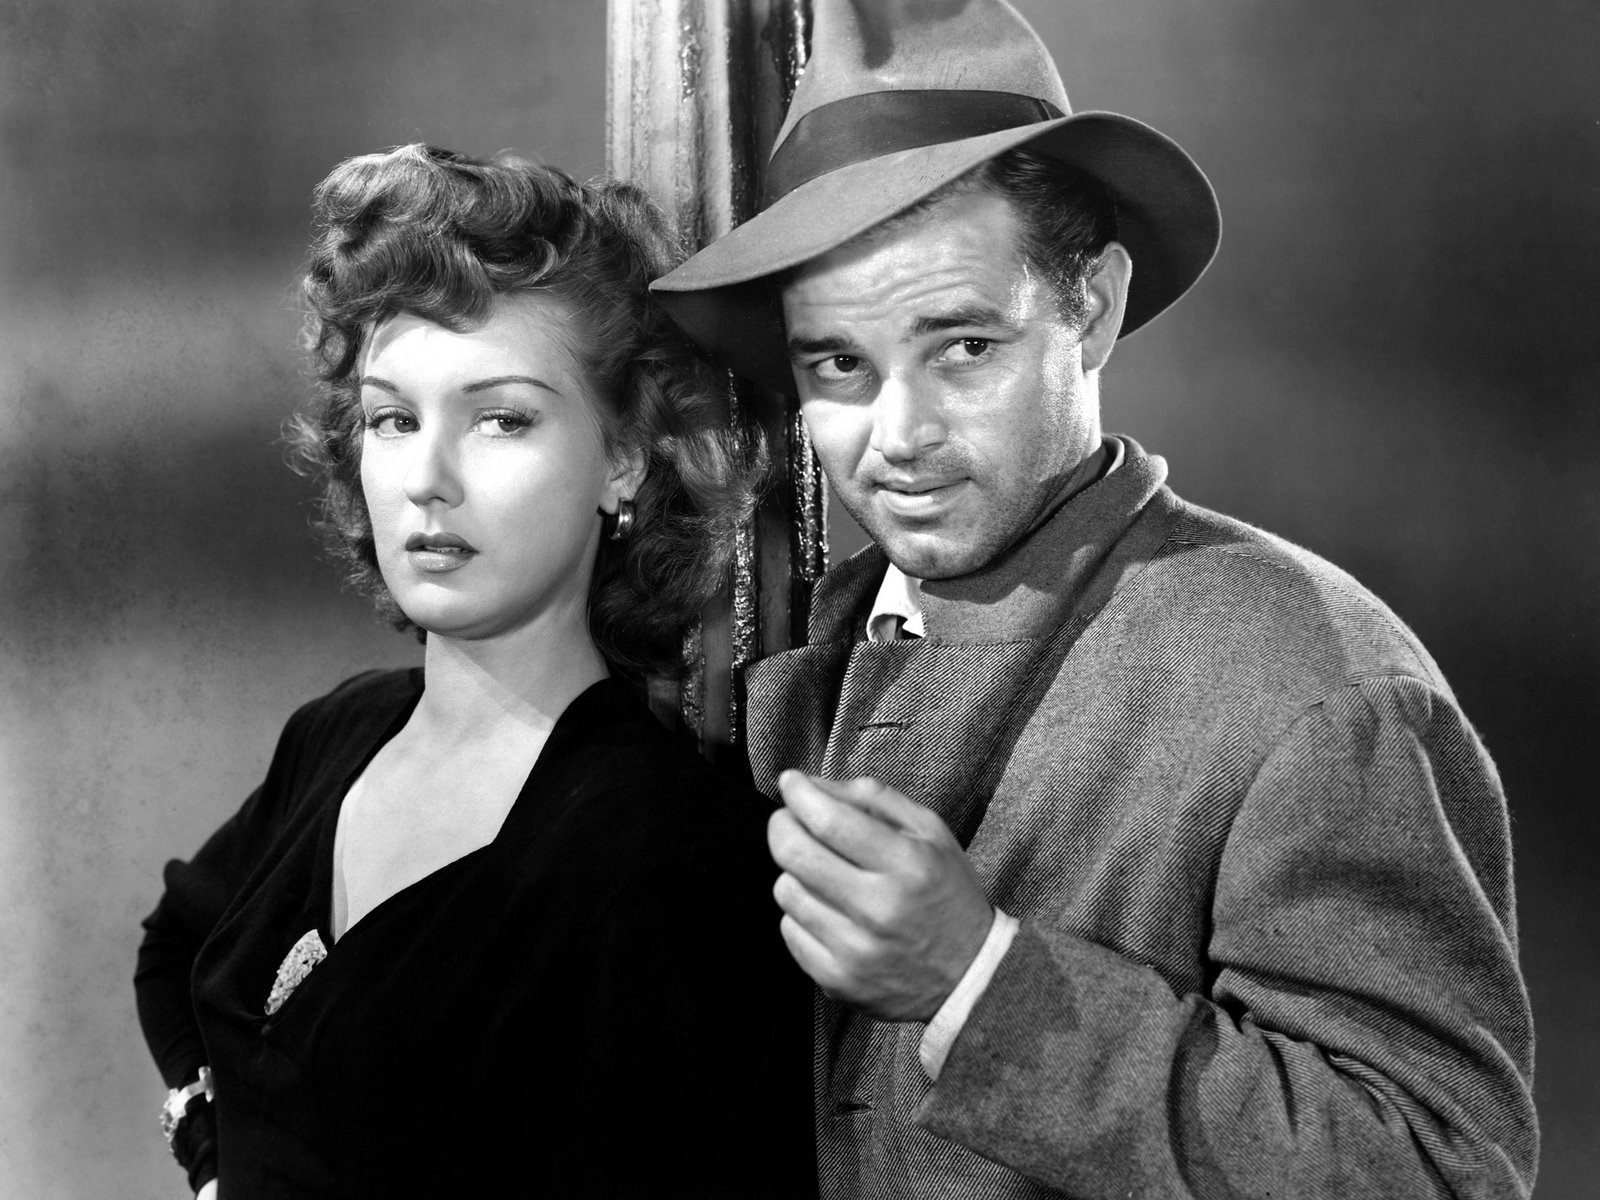 Ann Savage [Bernice Maxine Lyon] and Tom Neal in a scene from Detour